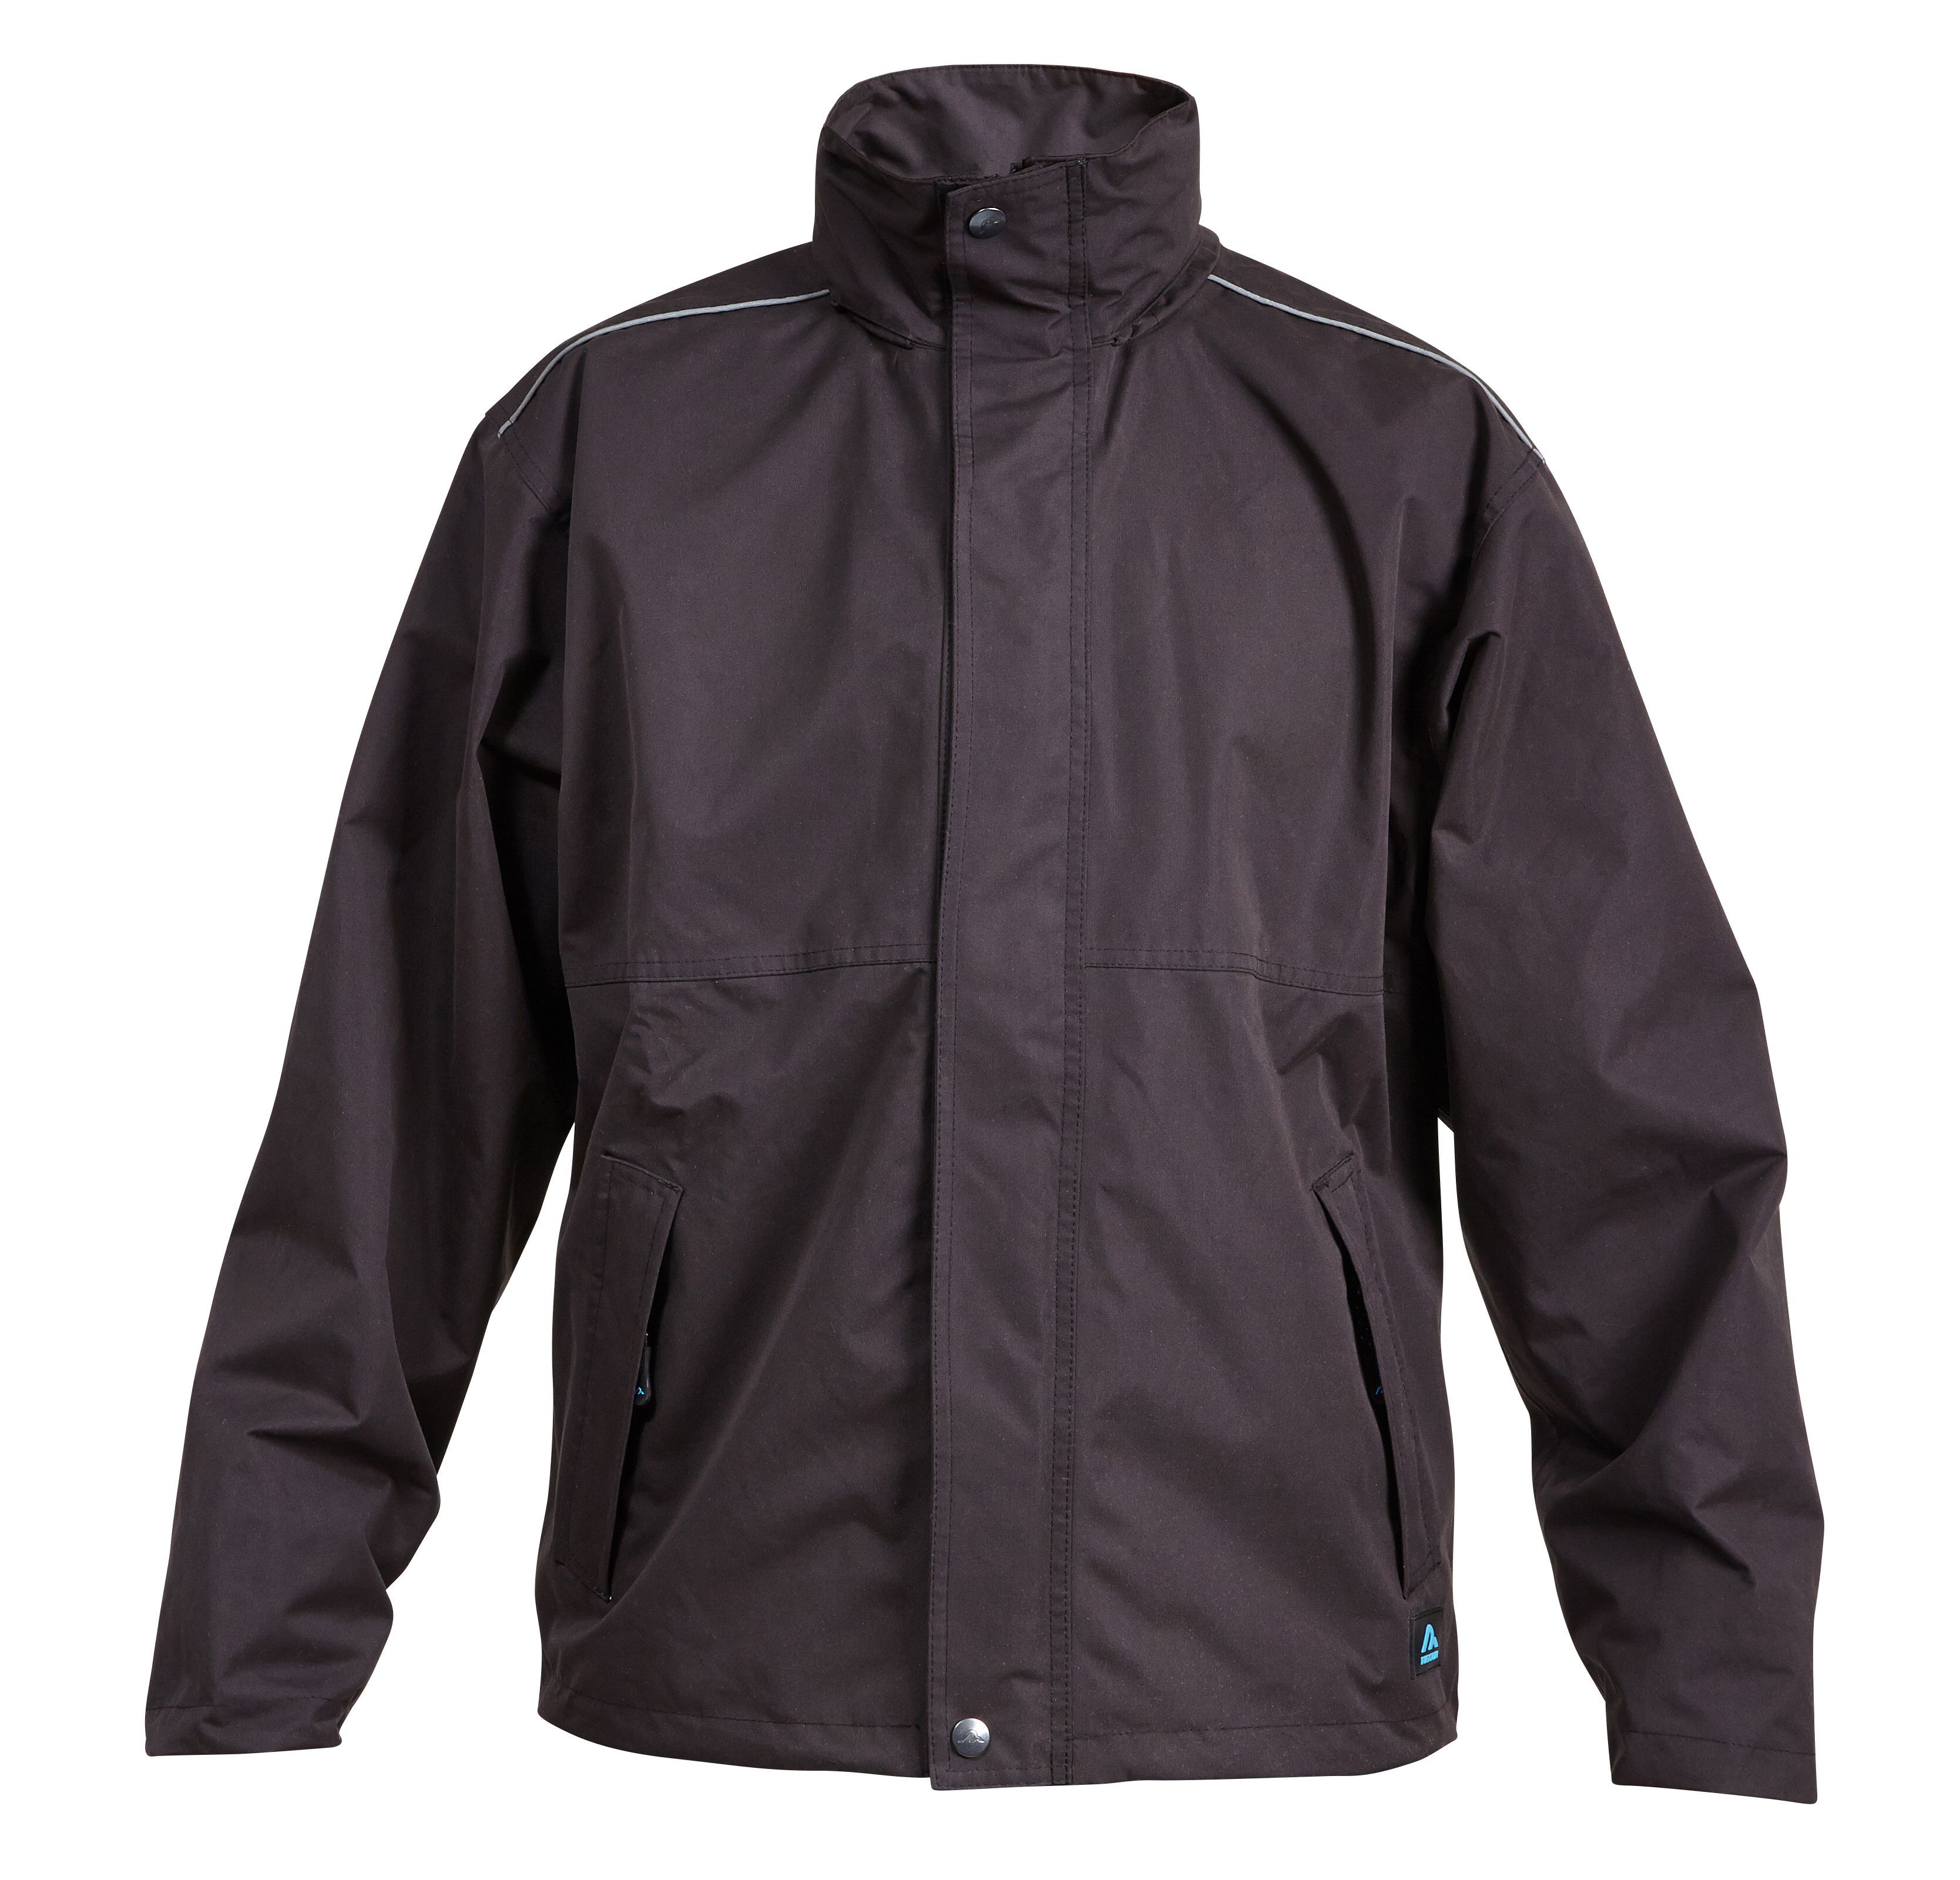 Rigour Black Waterproof Work Jacket Large | Departments | DIY at B&Q